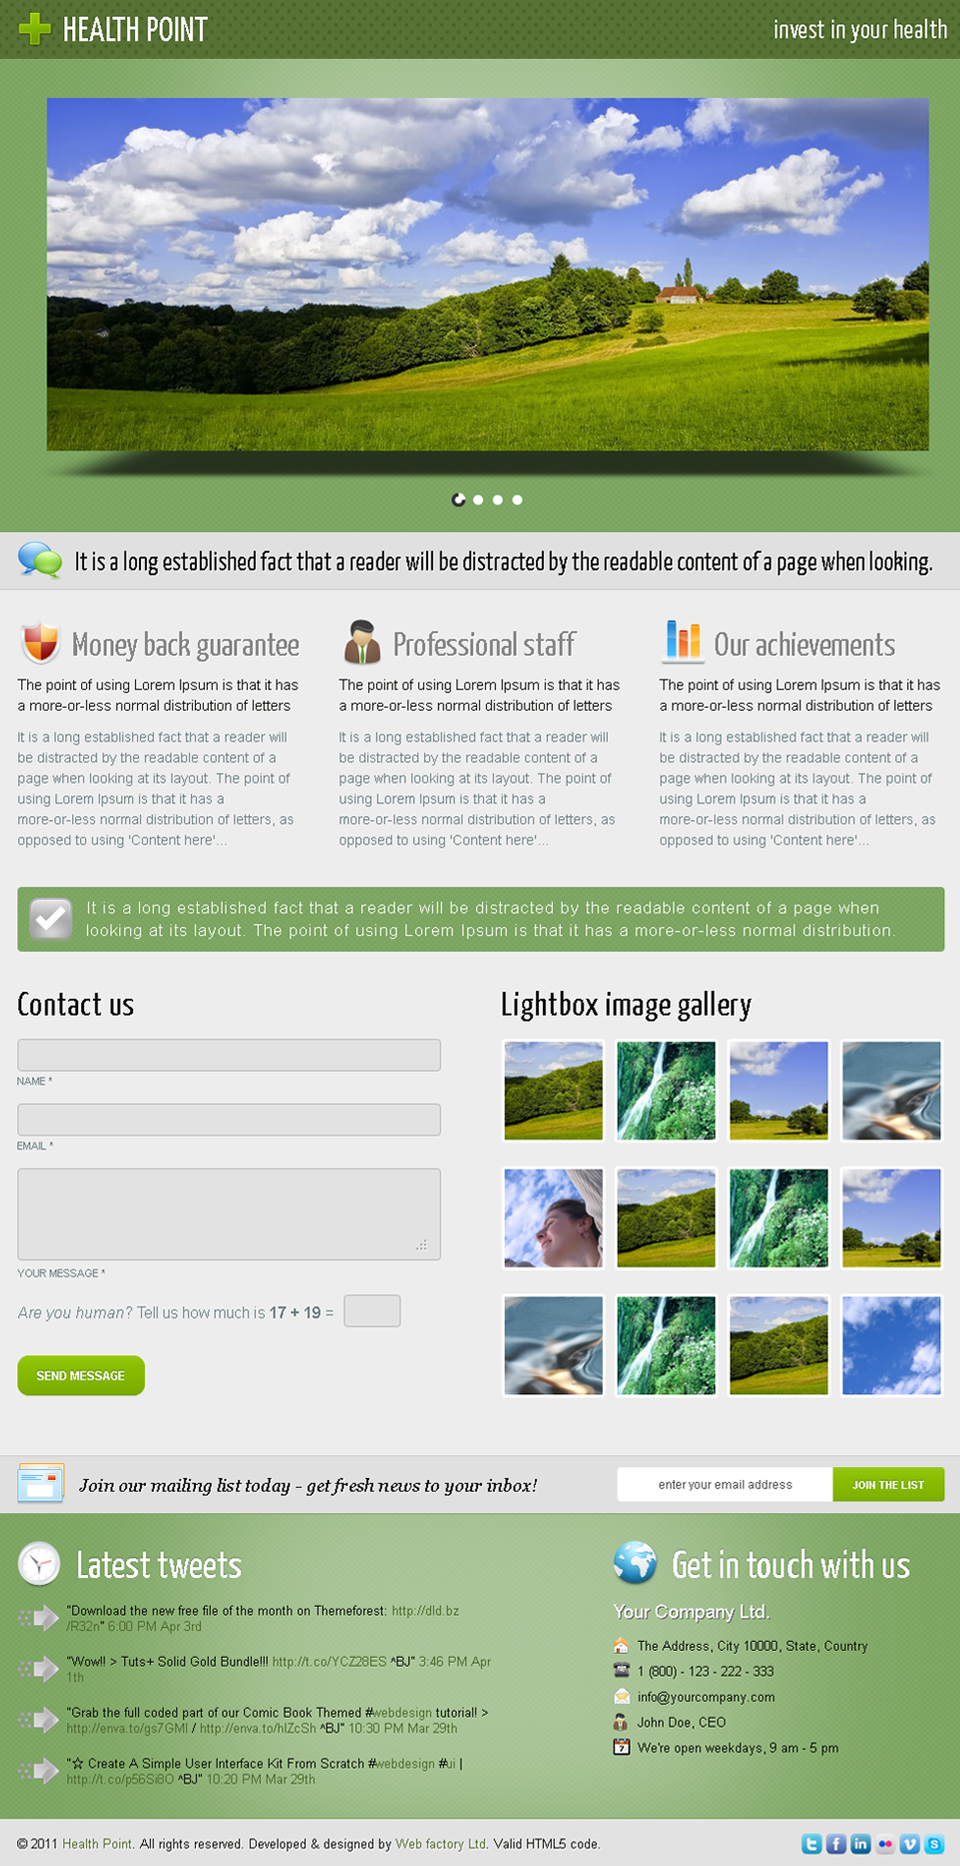 Health Point - Health Industry Landing Page - Health Point - green theme, 3D slider